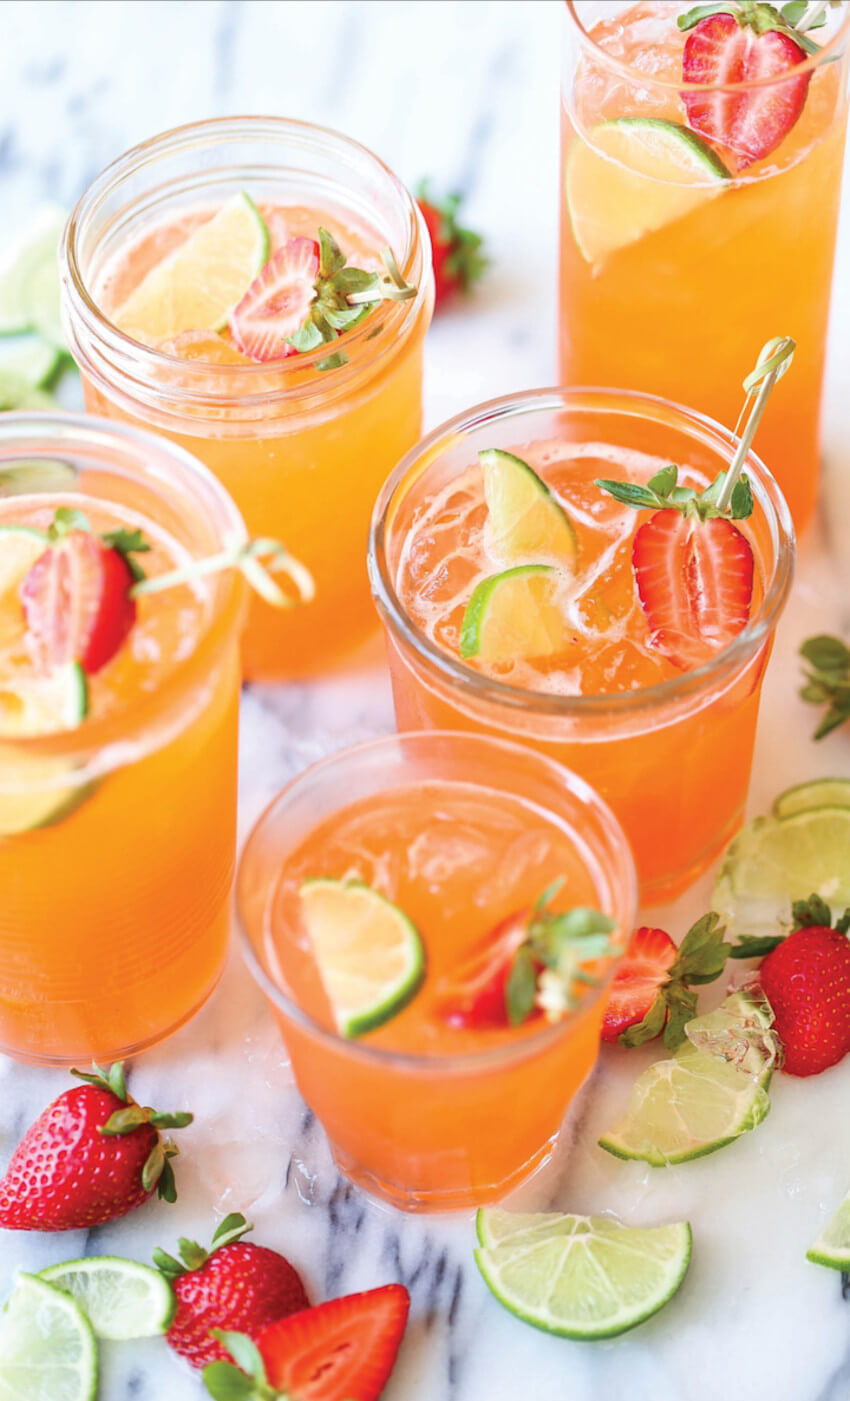 Punch is refreshing and delicious.